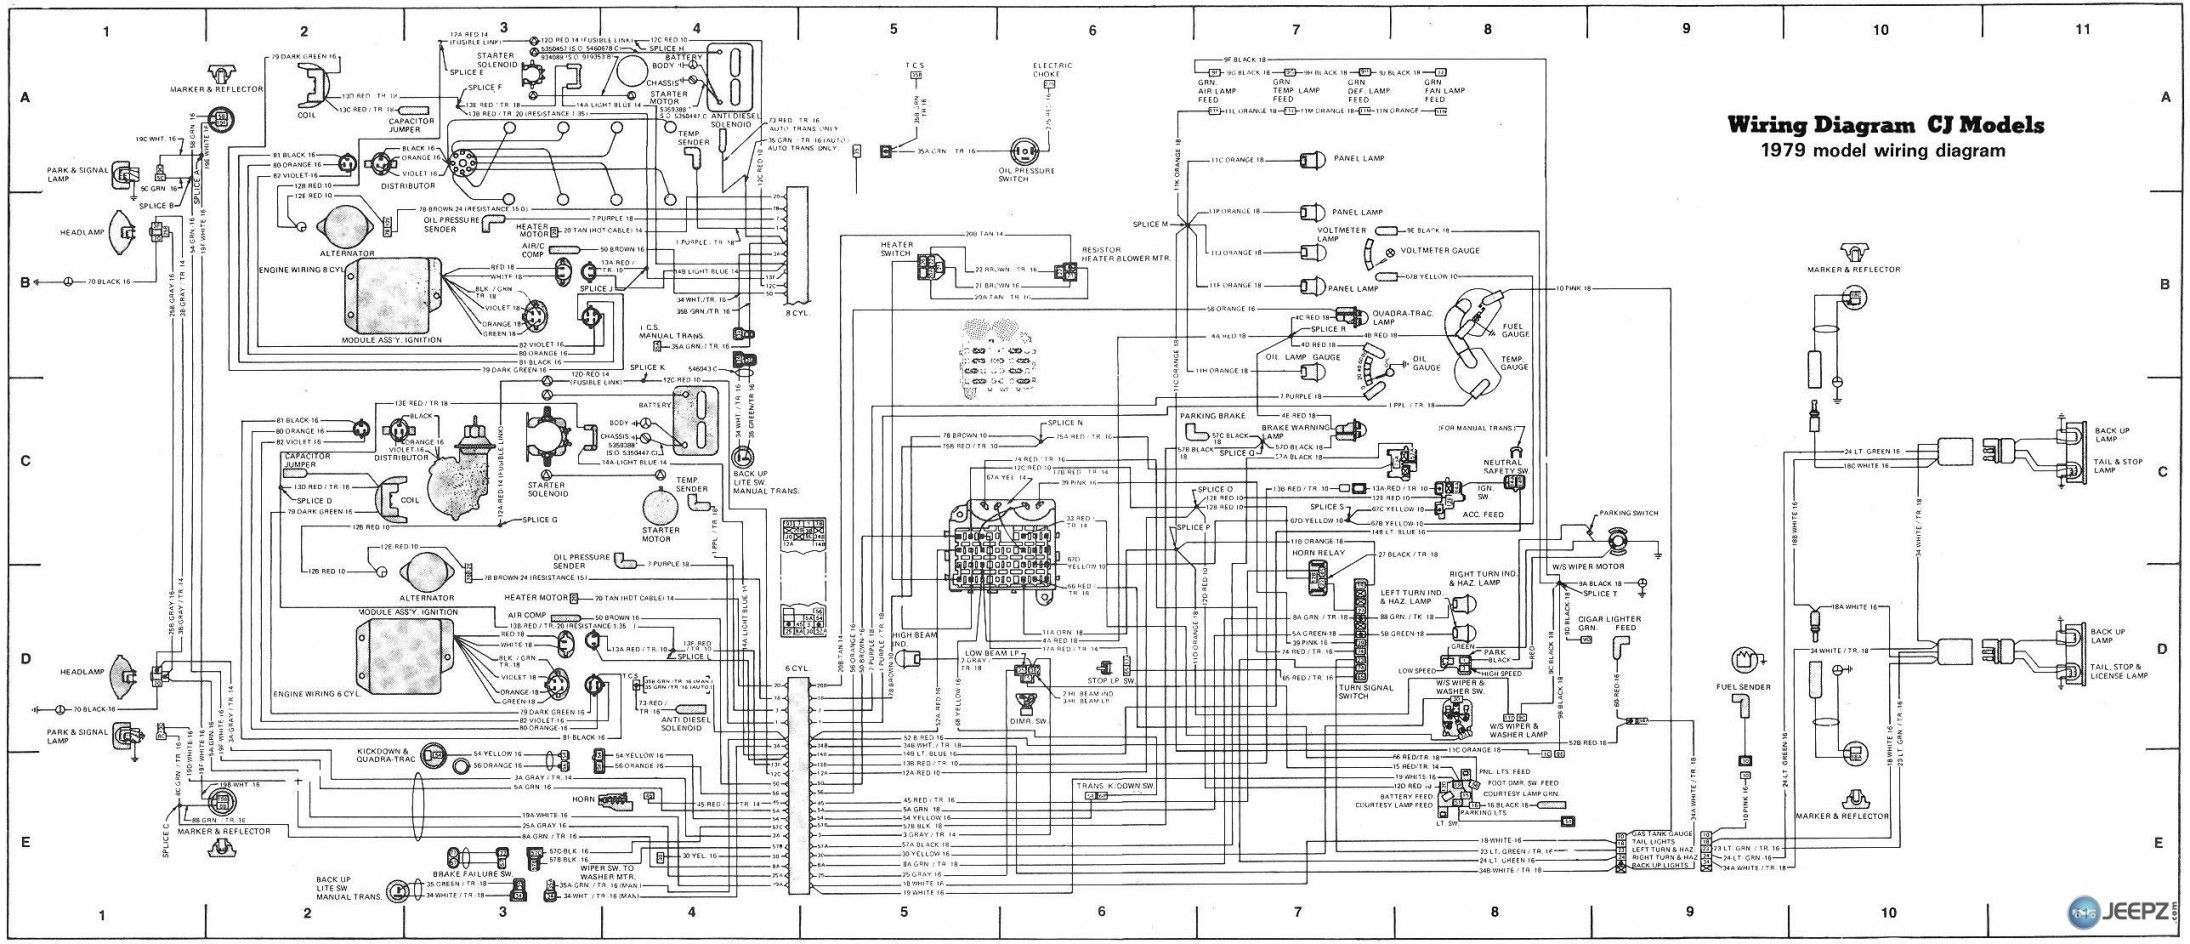 ☑ 1986 jeep cj7 wiring diagram hd quality ☑ phase-diagrams.twirlinglucca.it  diagram database - twirlinglucca.it